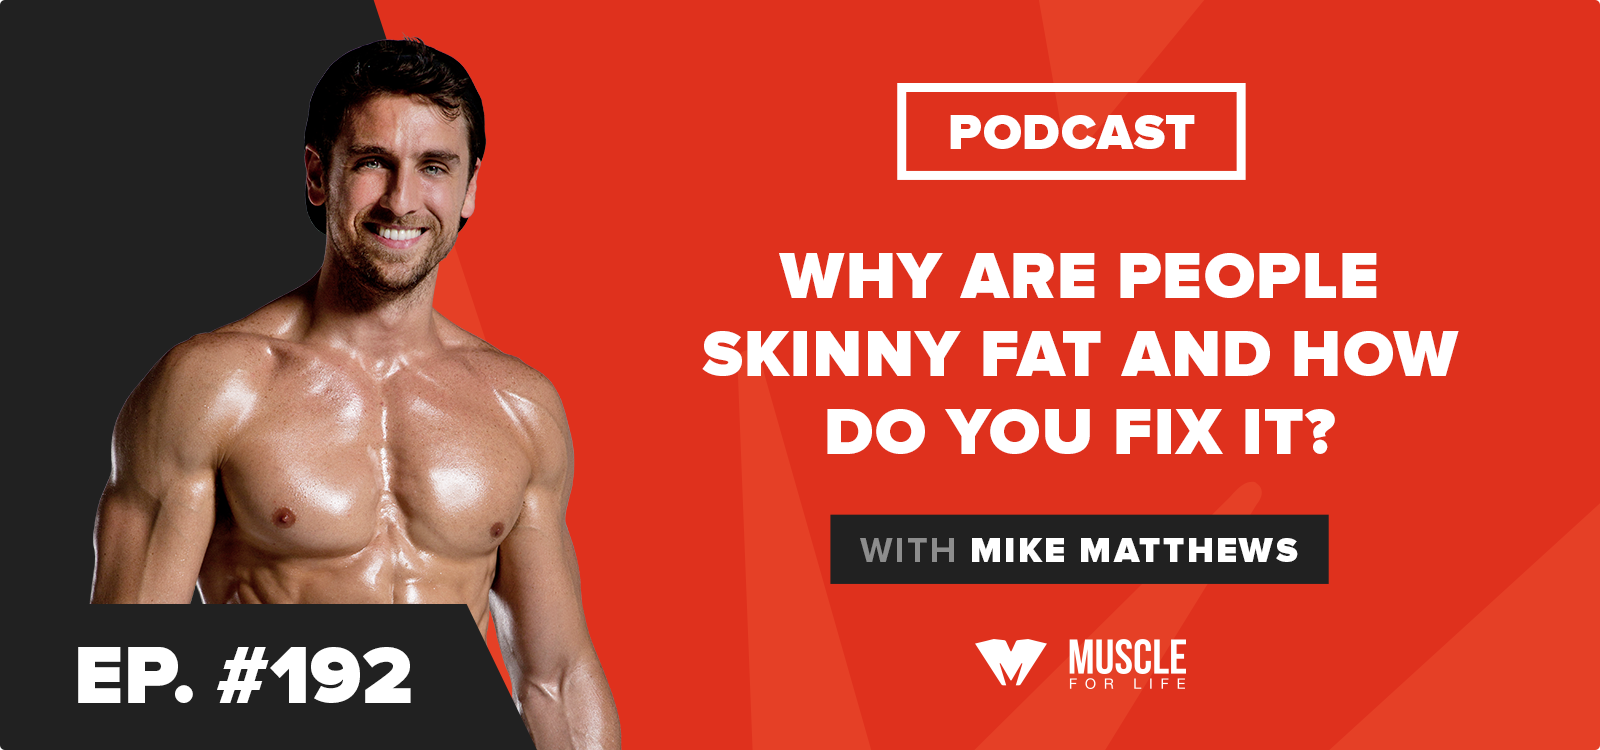 Why Are People Skinny Fat and How Do You Fix It?